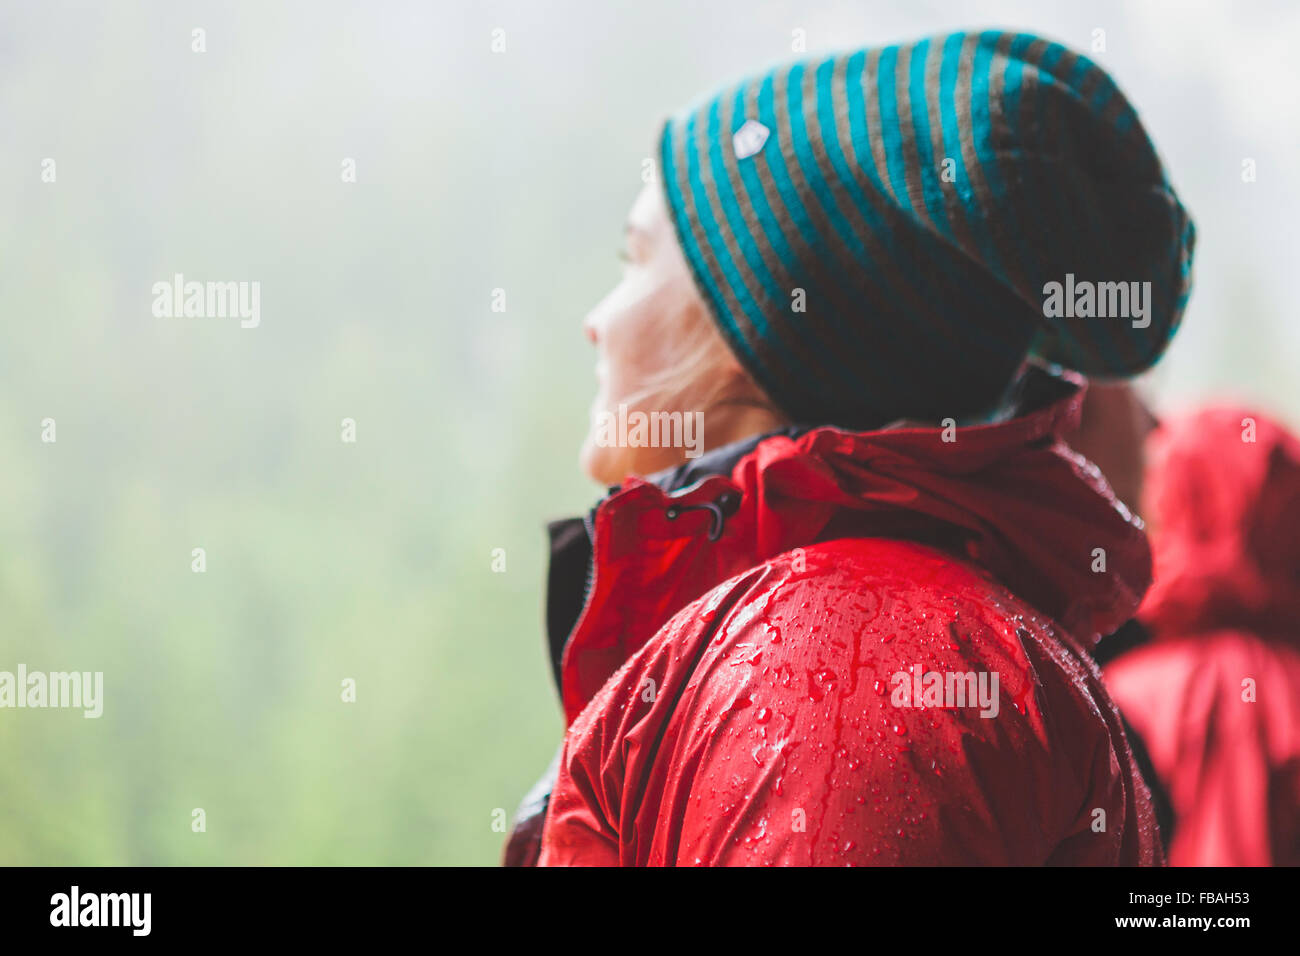 Switzerland, Ausserferrera, Young woman wearing warm red jacket and woolly hat - Stock Image